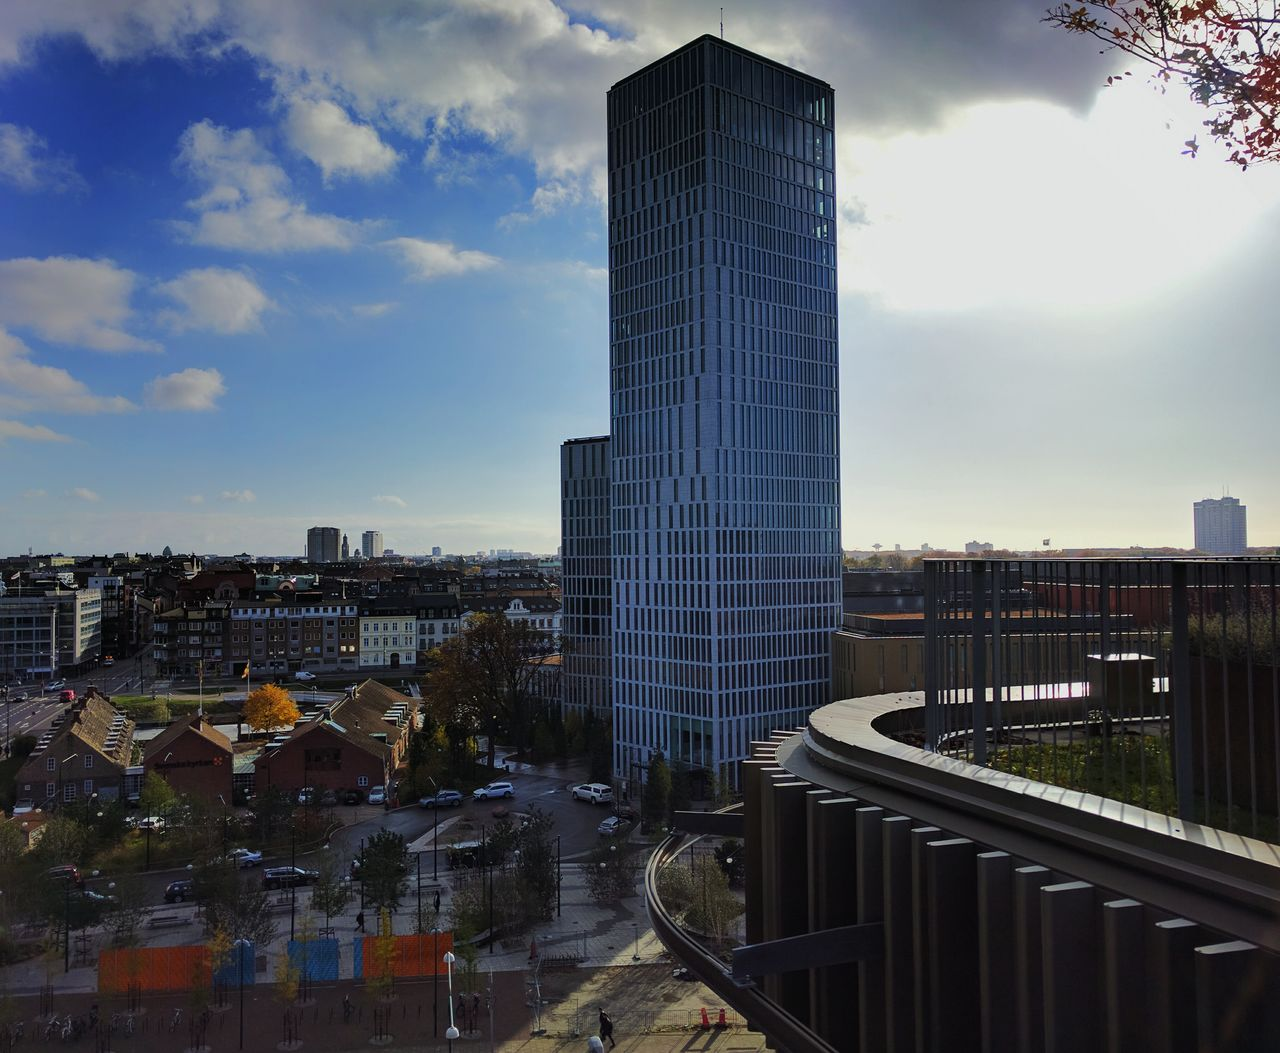 architecture, building exterior, built structure, city, sky, modern, skyscraper, cloud - sky, cityscape, outdoors, no people, day, urban skyline, tree